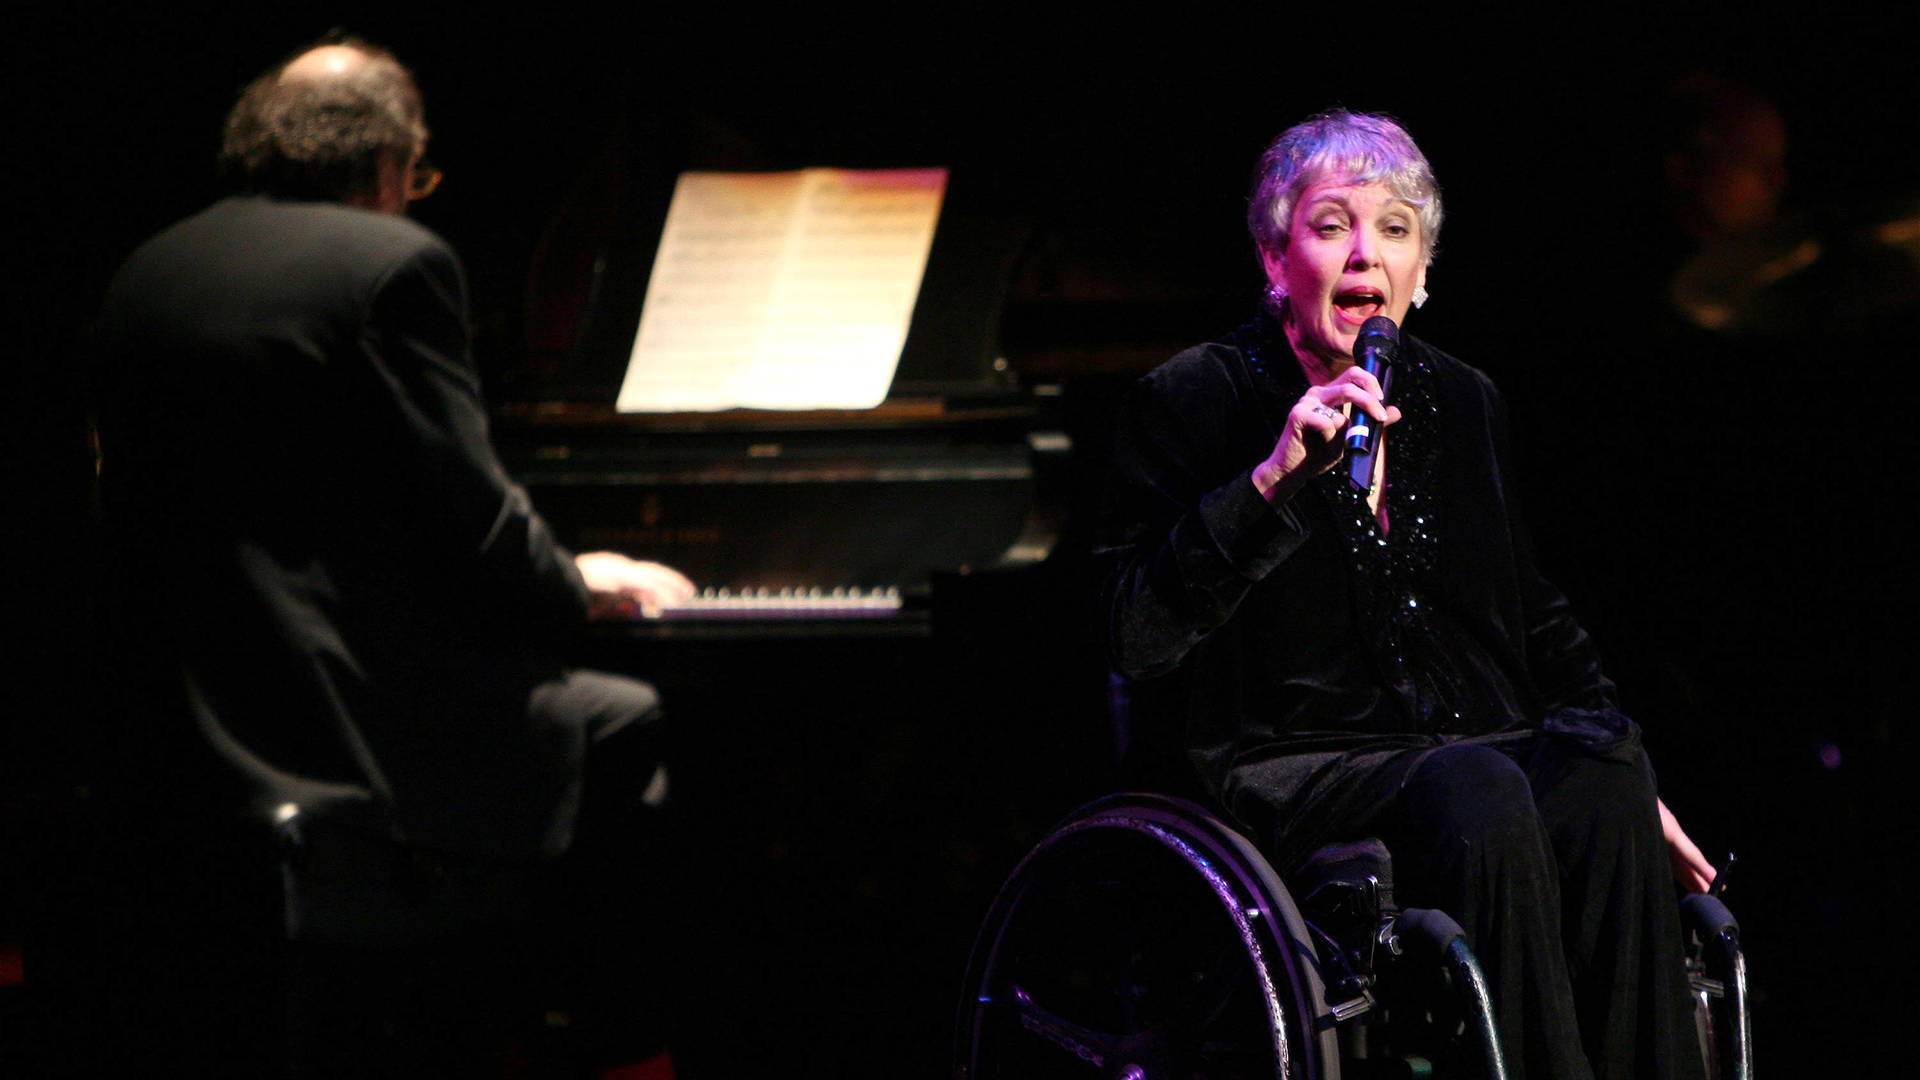 Wesla Whitfield performs at the Actor's Fund S.T.A.G.E. Too Tribute: Hooray For Love celebrating the music of Harold Arlen on November 12, 2005 in Los Angeles, California.